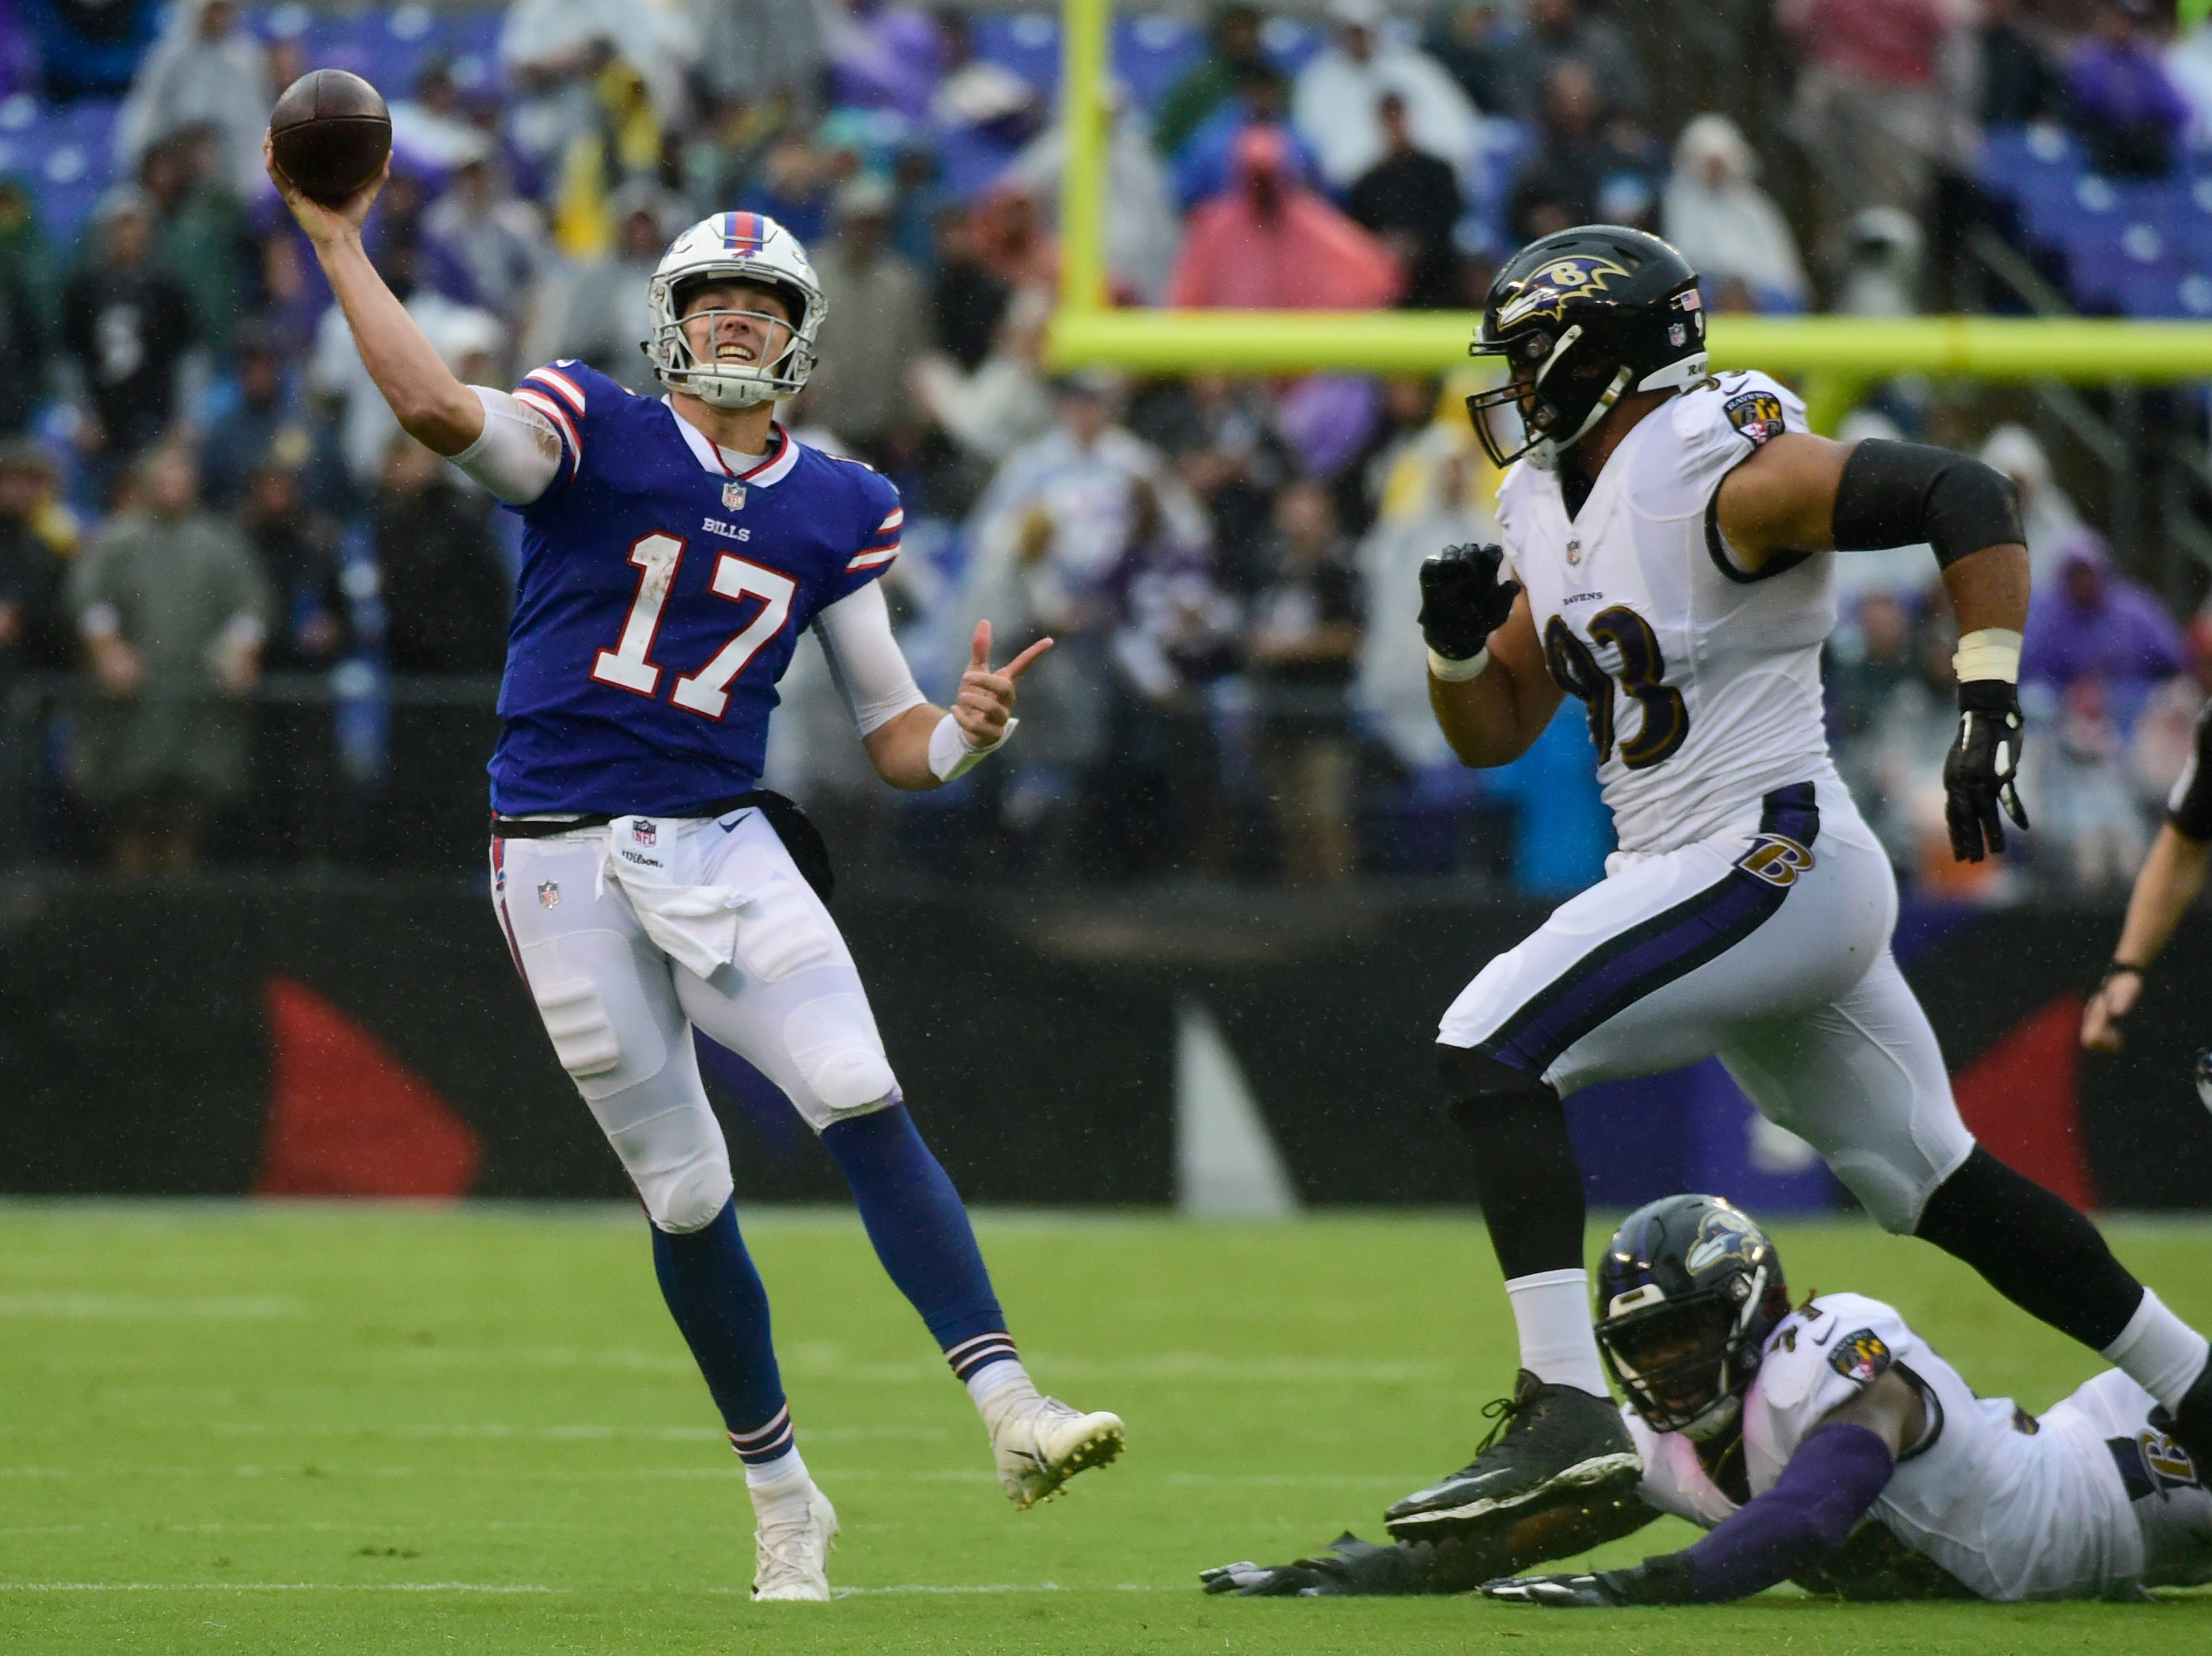 Buffalo Bills quarterback Josh Allen (17) throws on the run as Baltimore Ravens defensive end Chris Wormley (93) applies pressure in the third quarter at M&T Bank Stadium.